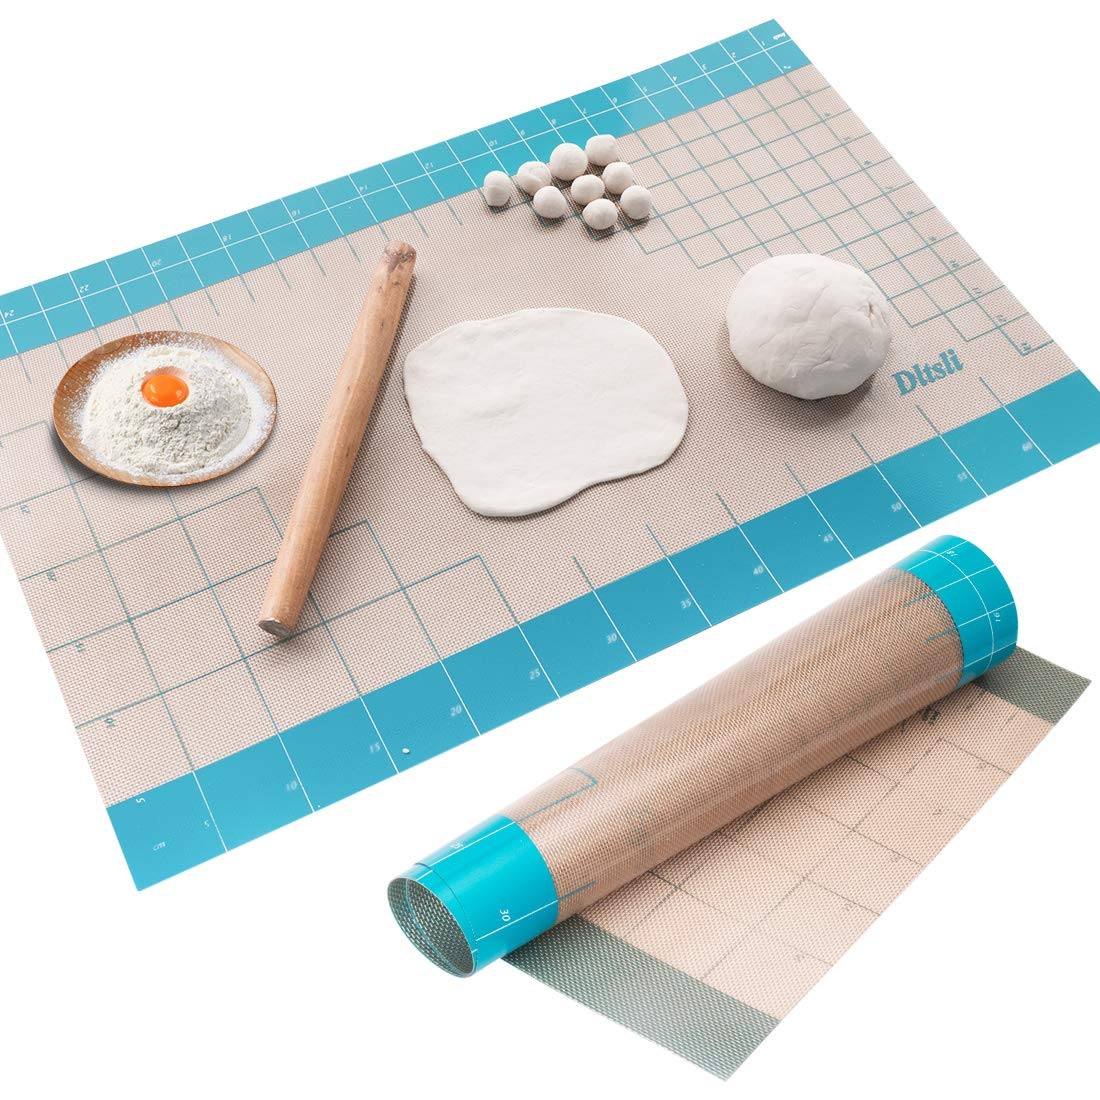 "26"" x 16"" Silicone Baking Pastry Fondant Mat with Measurements for Baking Dough Rolling Mat Countertop Mat Oven Liner"